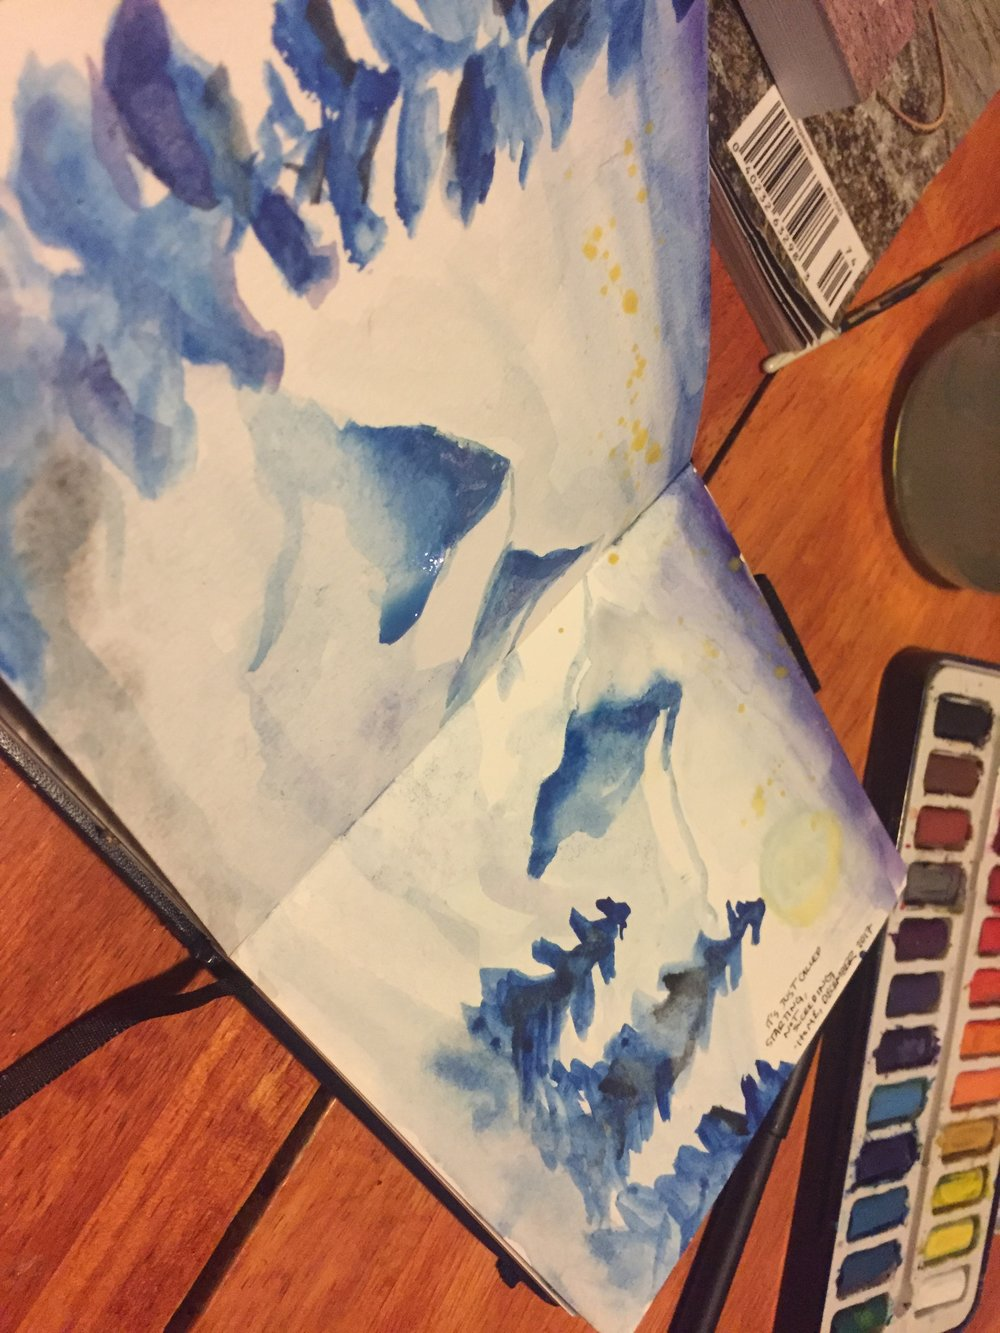 I've been working on my mountains. Send help and advice!